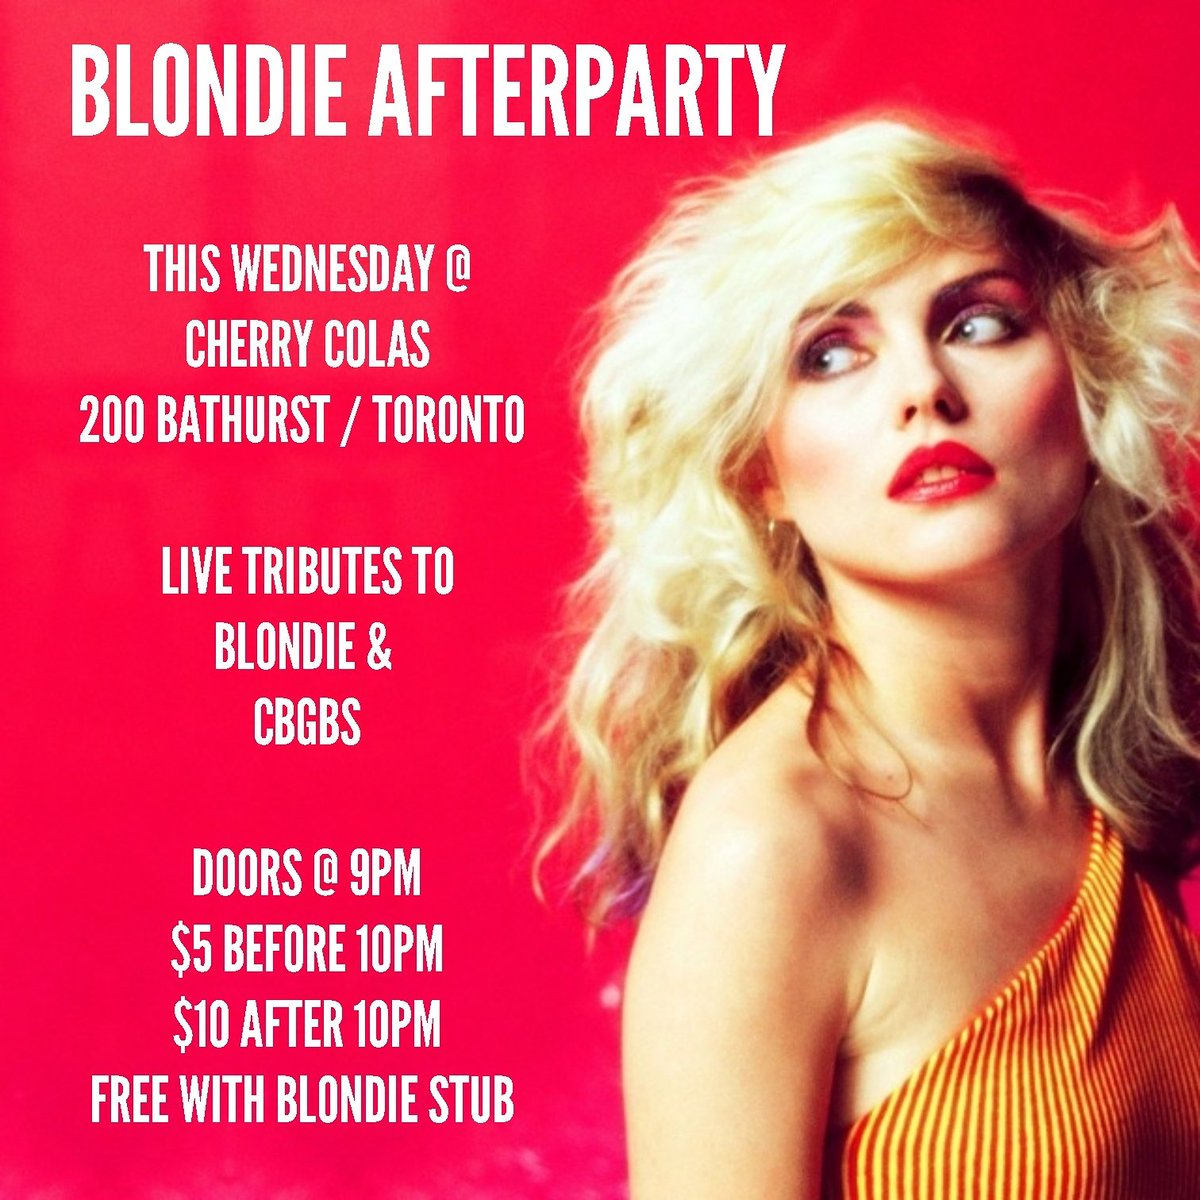 #Blondie afterparty WEDNESDAY @ @Cherry_Colas #Toronto live tribs to @BlondieOfficial And @CBGBofficial   #Ontario #Canada #livemusic #RT<br>http://pic.twitter.com/WKF2HT71CD